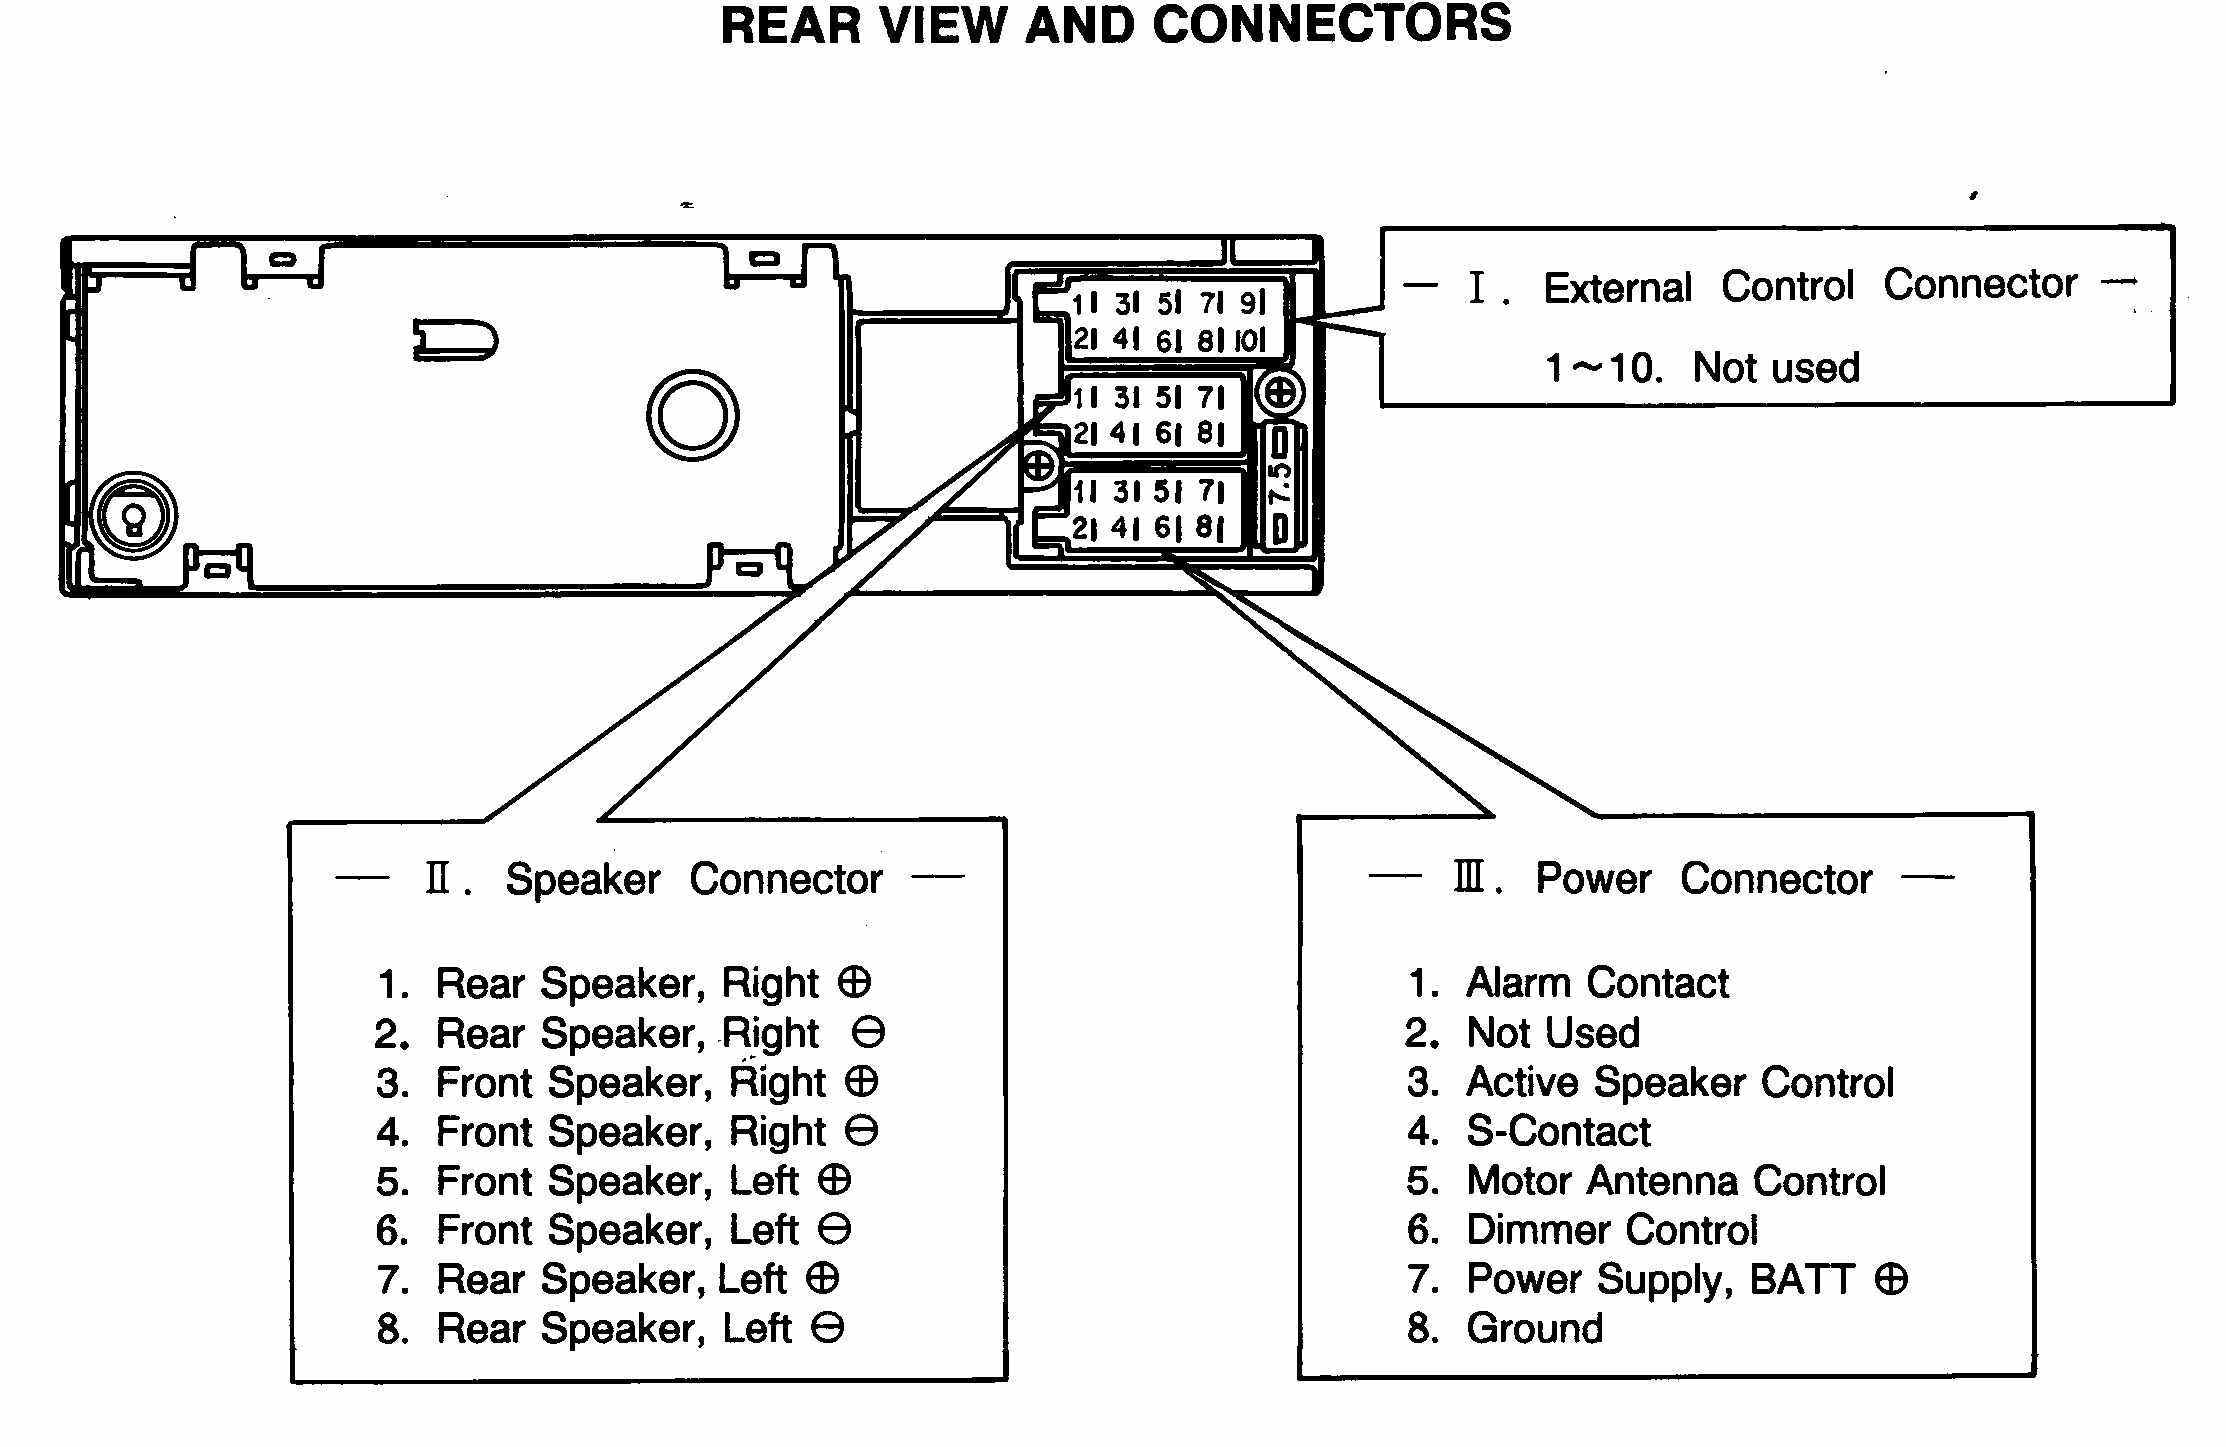 [TBQL_4184]  OA_9624] 2000 Jeep Grand Cherokee Factory Stereo Wiring Wiring Diagram | Scosche Wiring Harness Diagram 88 Jeep Cherokee |  | Usly Feren Brom Kicep Mohammedshrine Librar Wiring 101